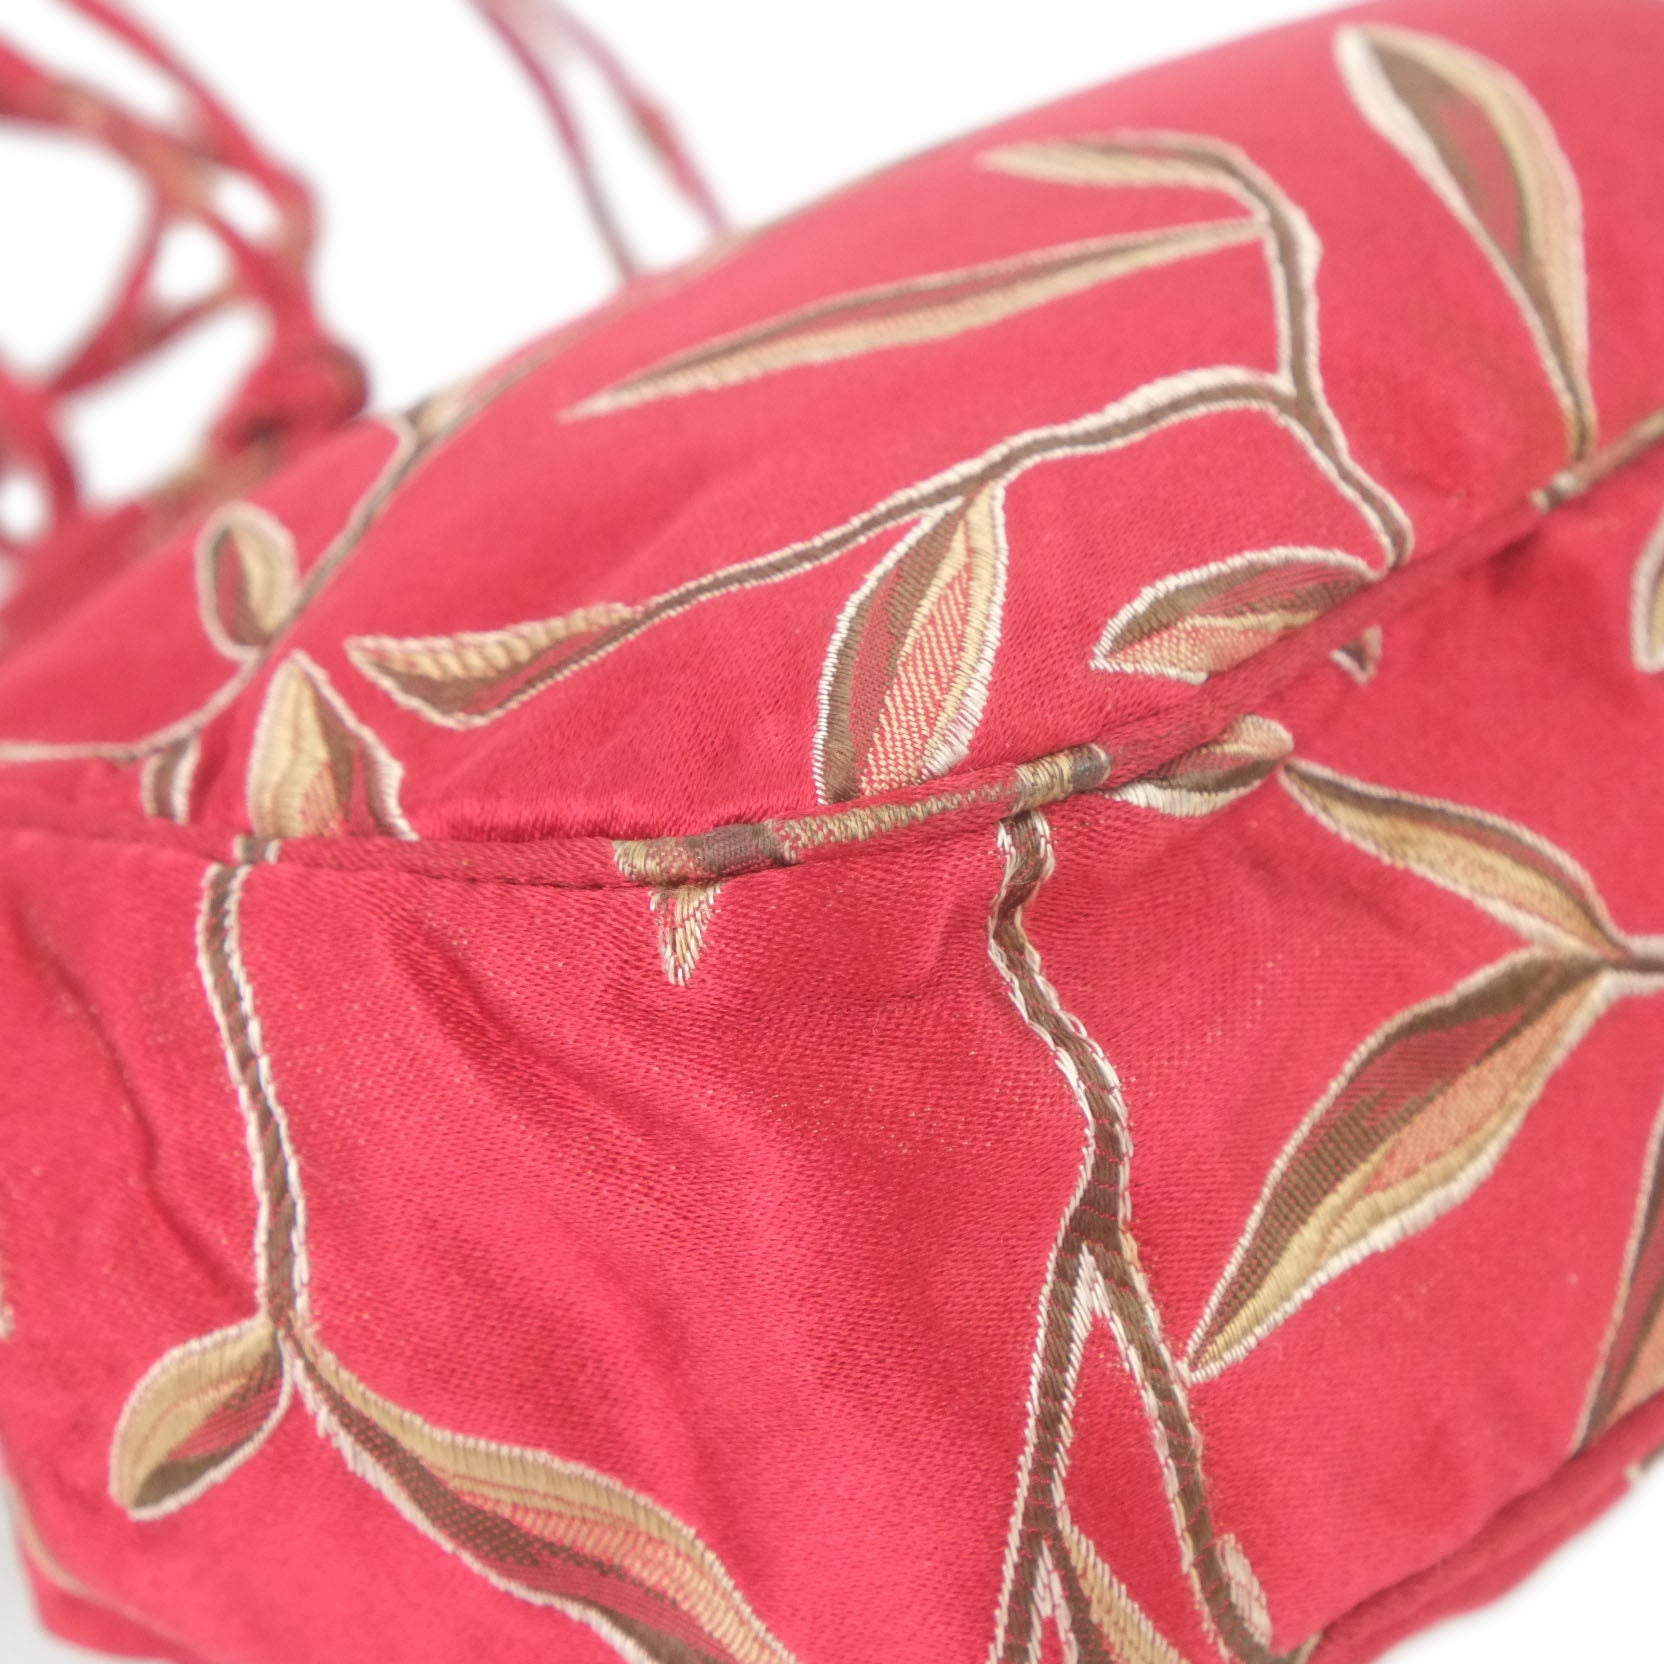 Hermes Cardigan size 38